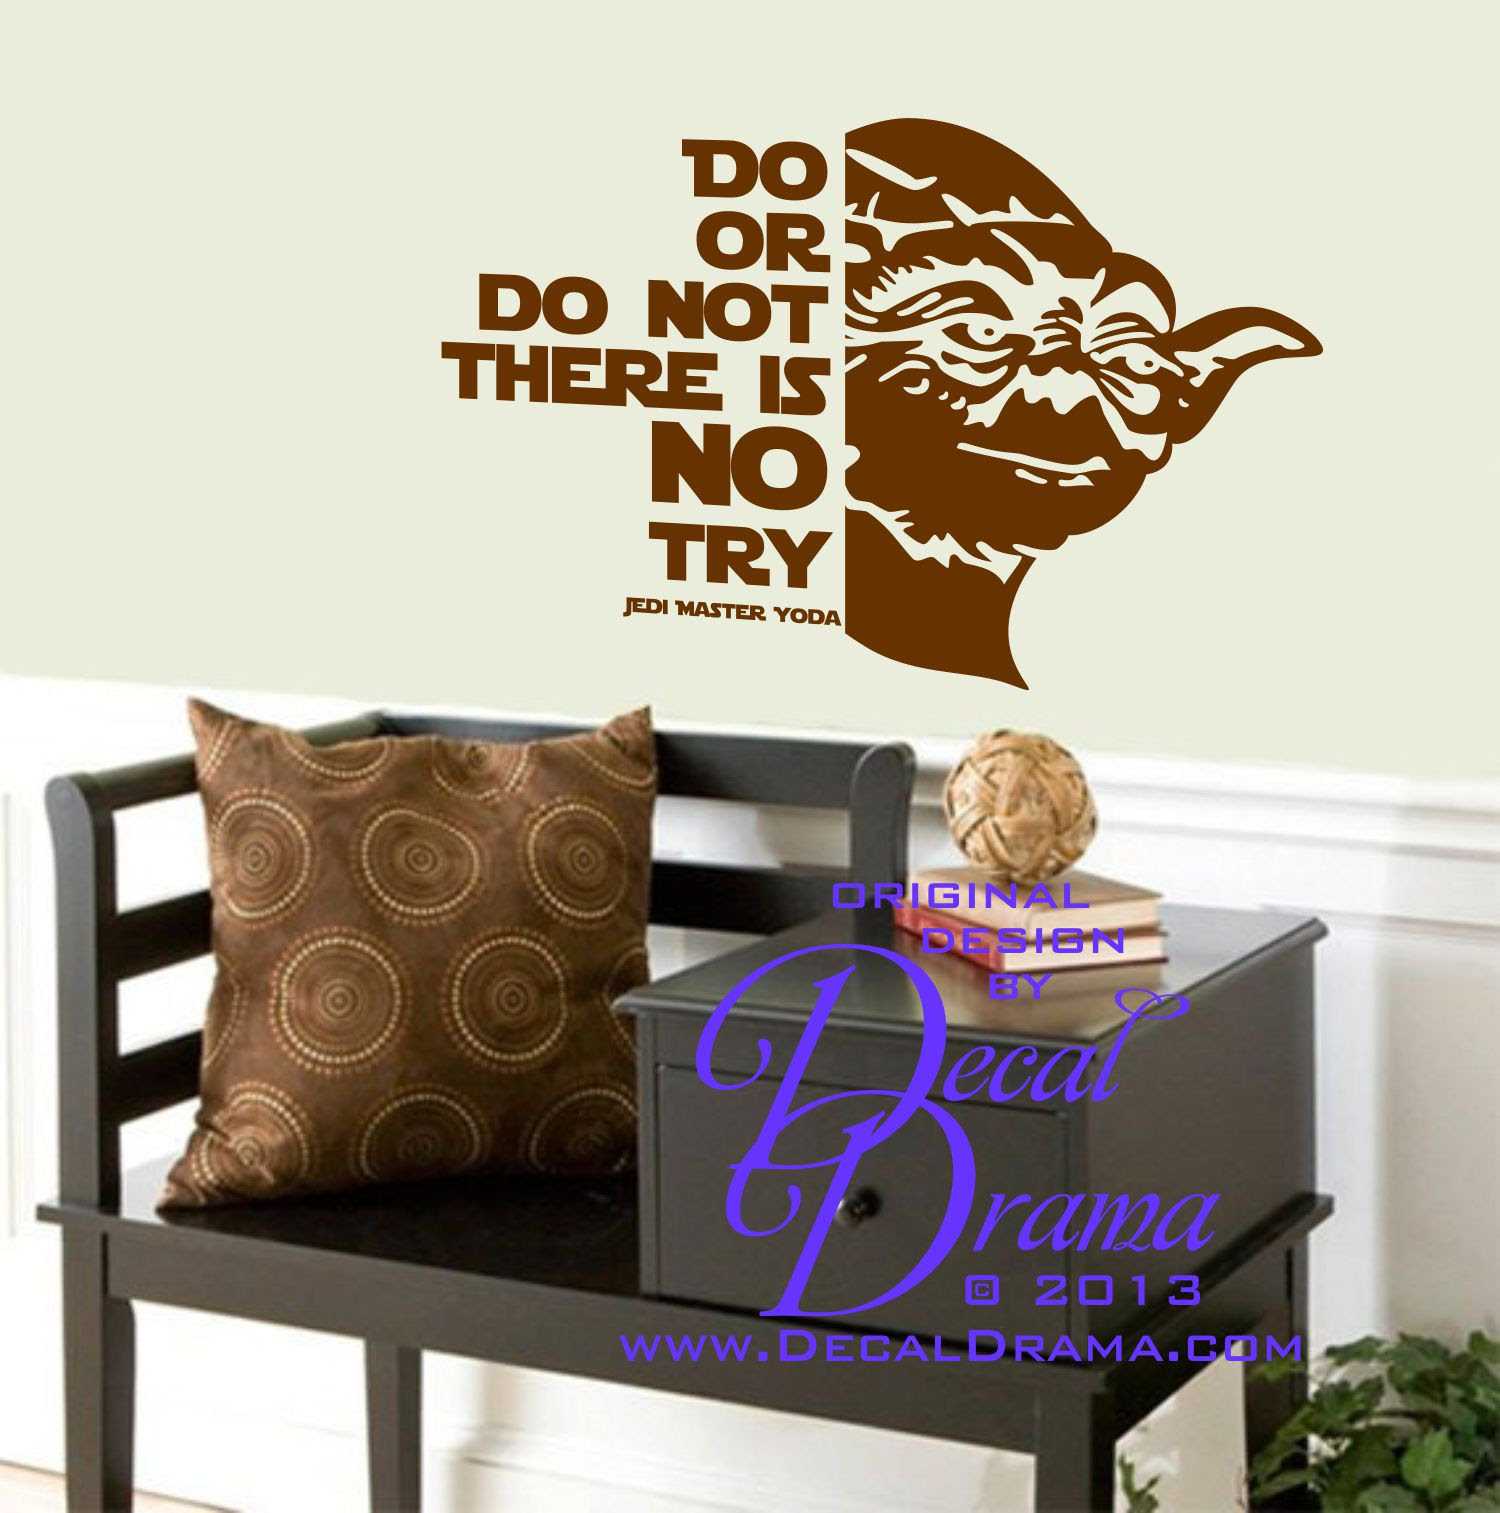 Decal Drama Do Or Do Not There Is No Try With Yoda Star Wars